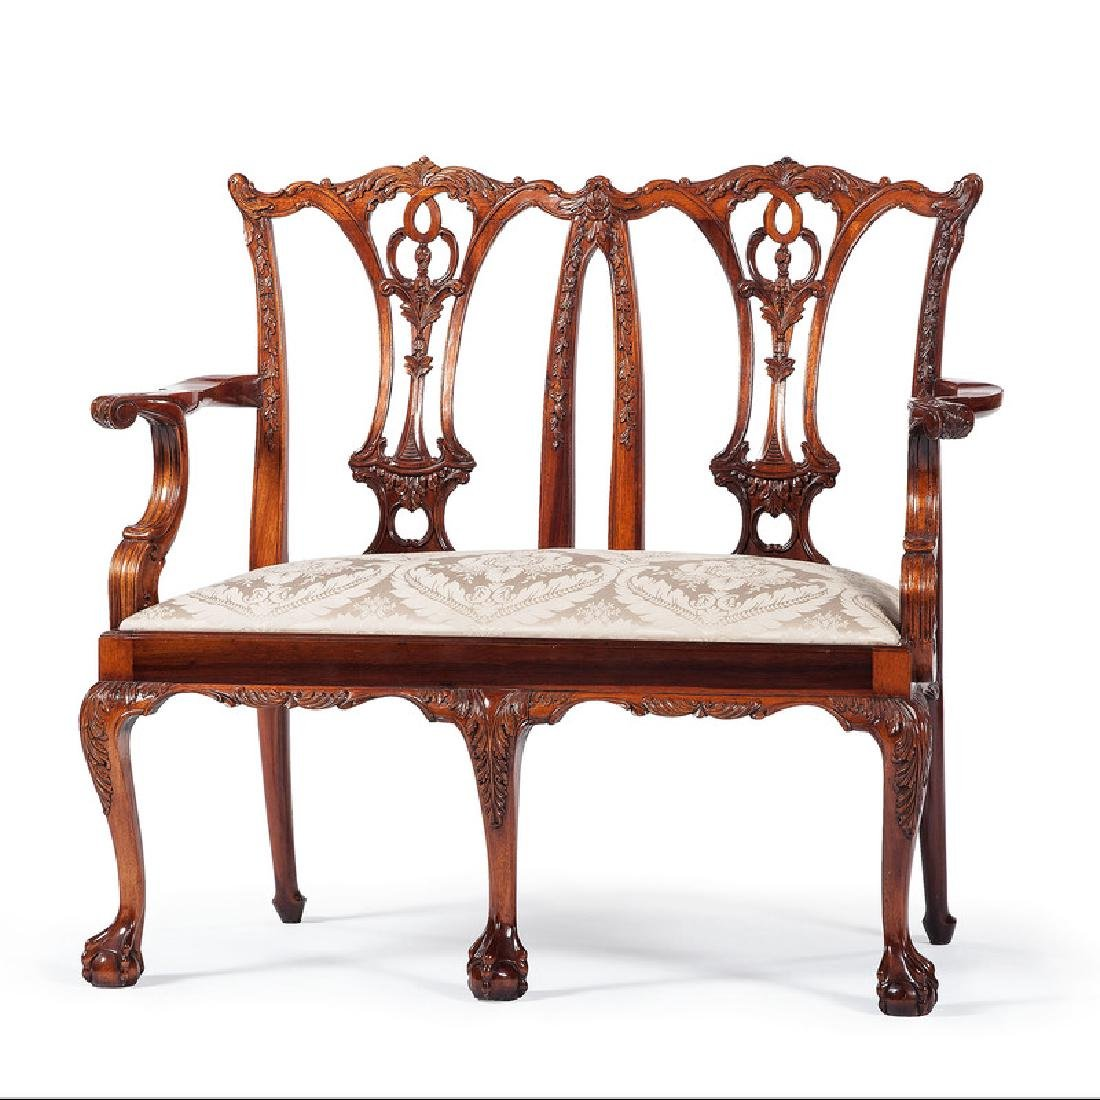 Chippendale-style Settee